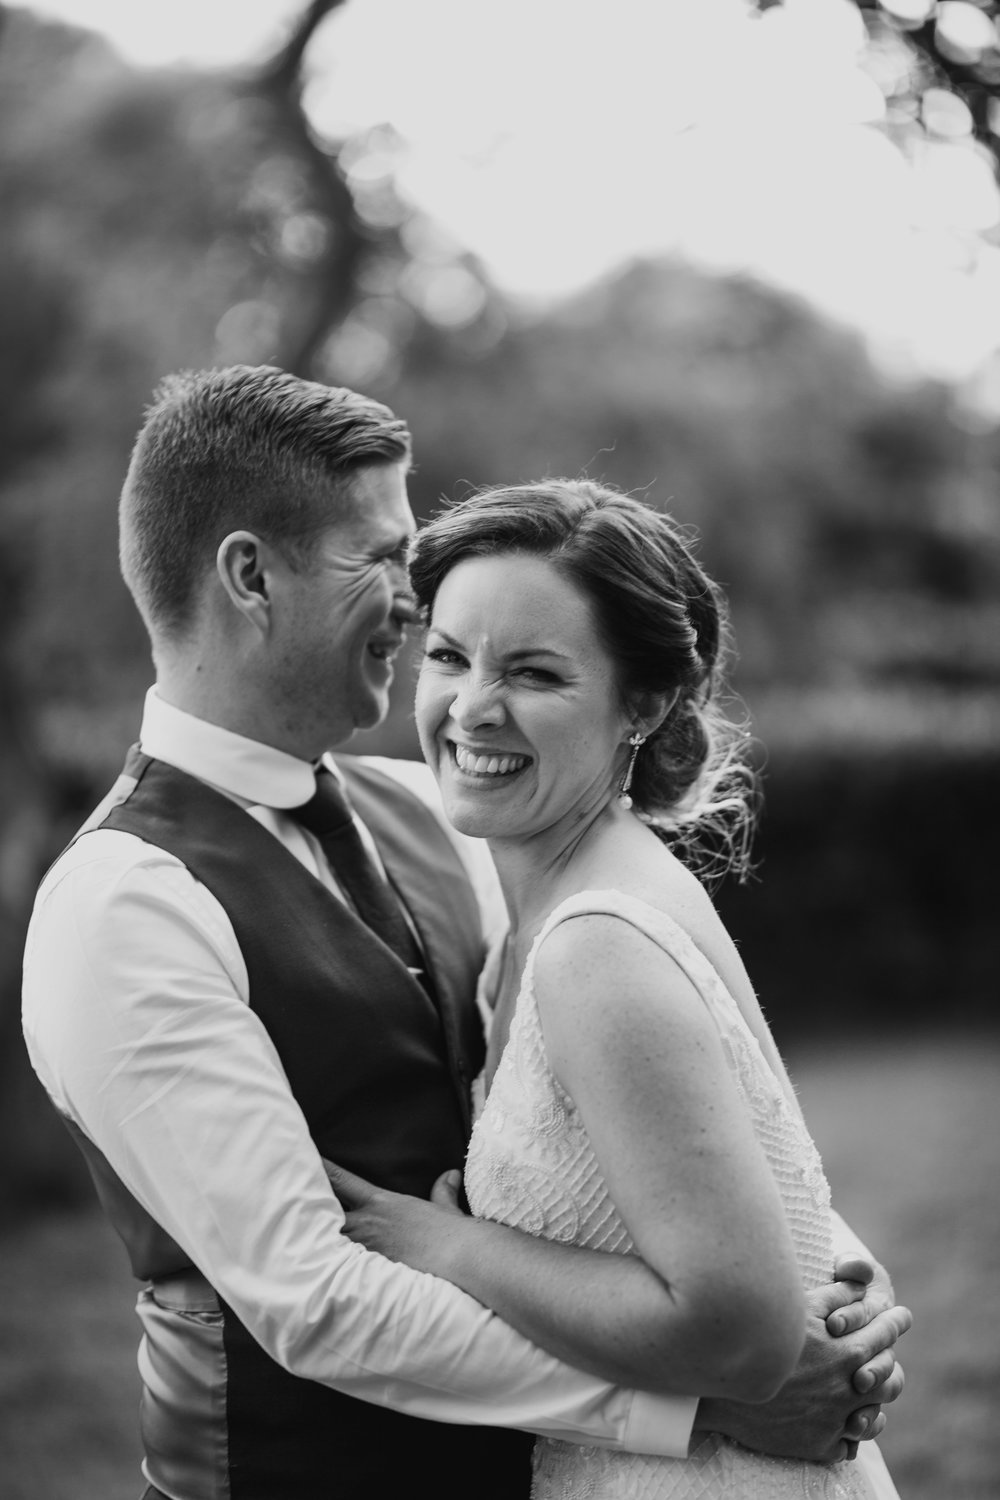 e+t_ballilogue_kilkenny_wedding_photographer_liviafigueiredo_225.JPG